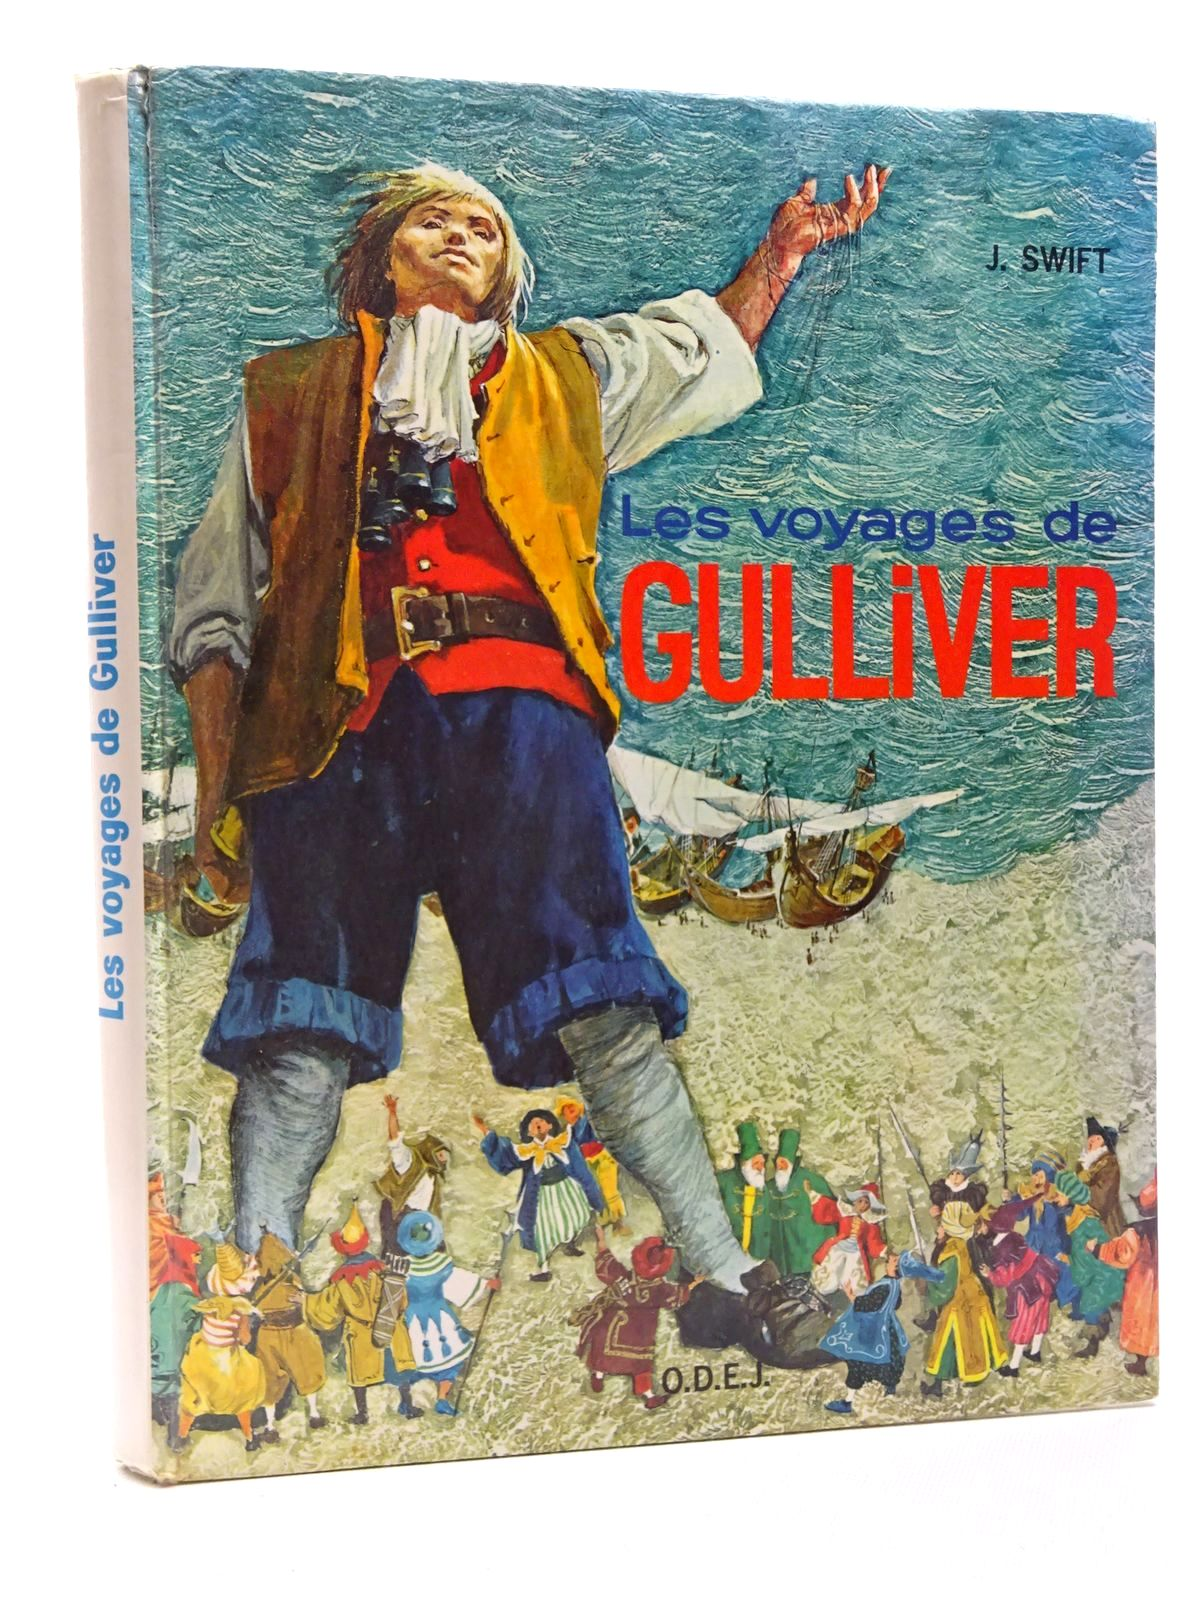 Photo of LES VOYAGES DE GULLIVER written by Swift, Jonathan illustrated by De Maraja, published by O.D.E.J. (STOCK CODE: 2124137)  for sale by Stella & Rose's Books